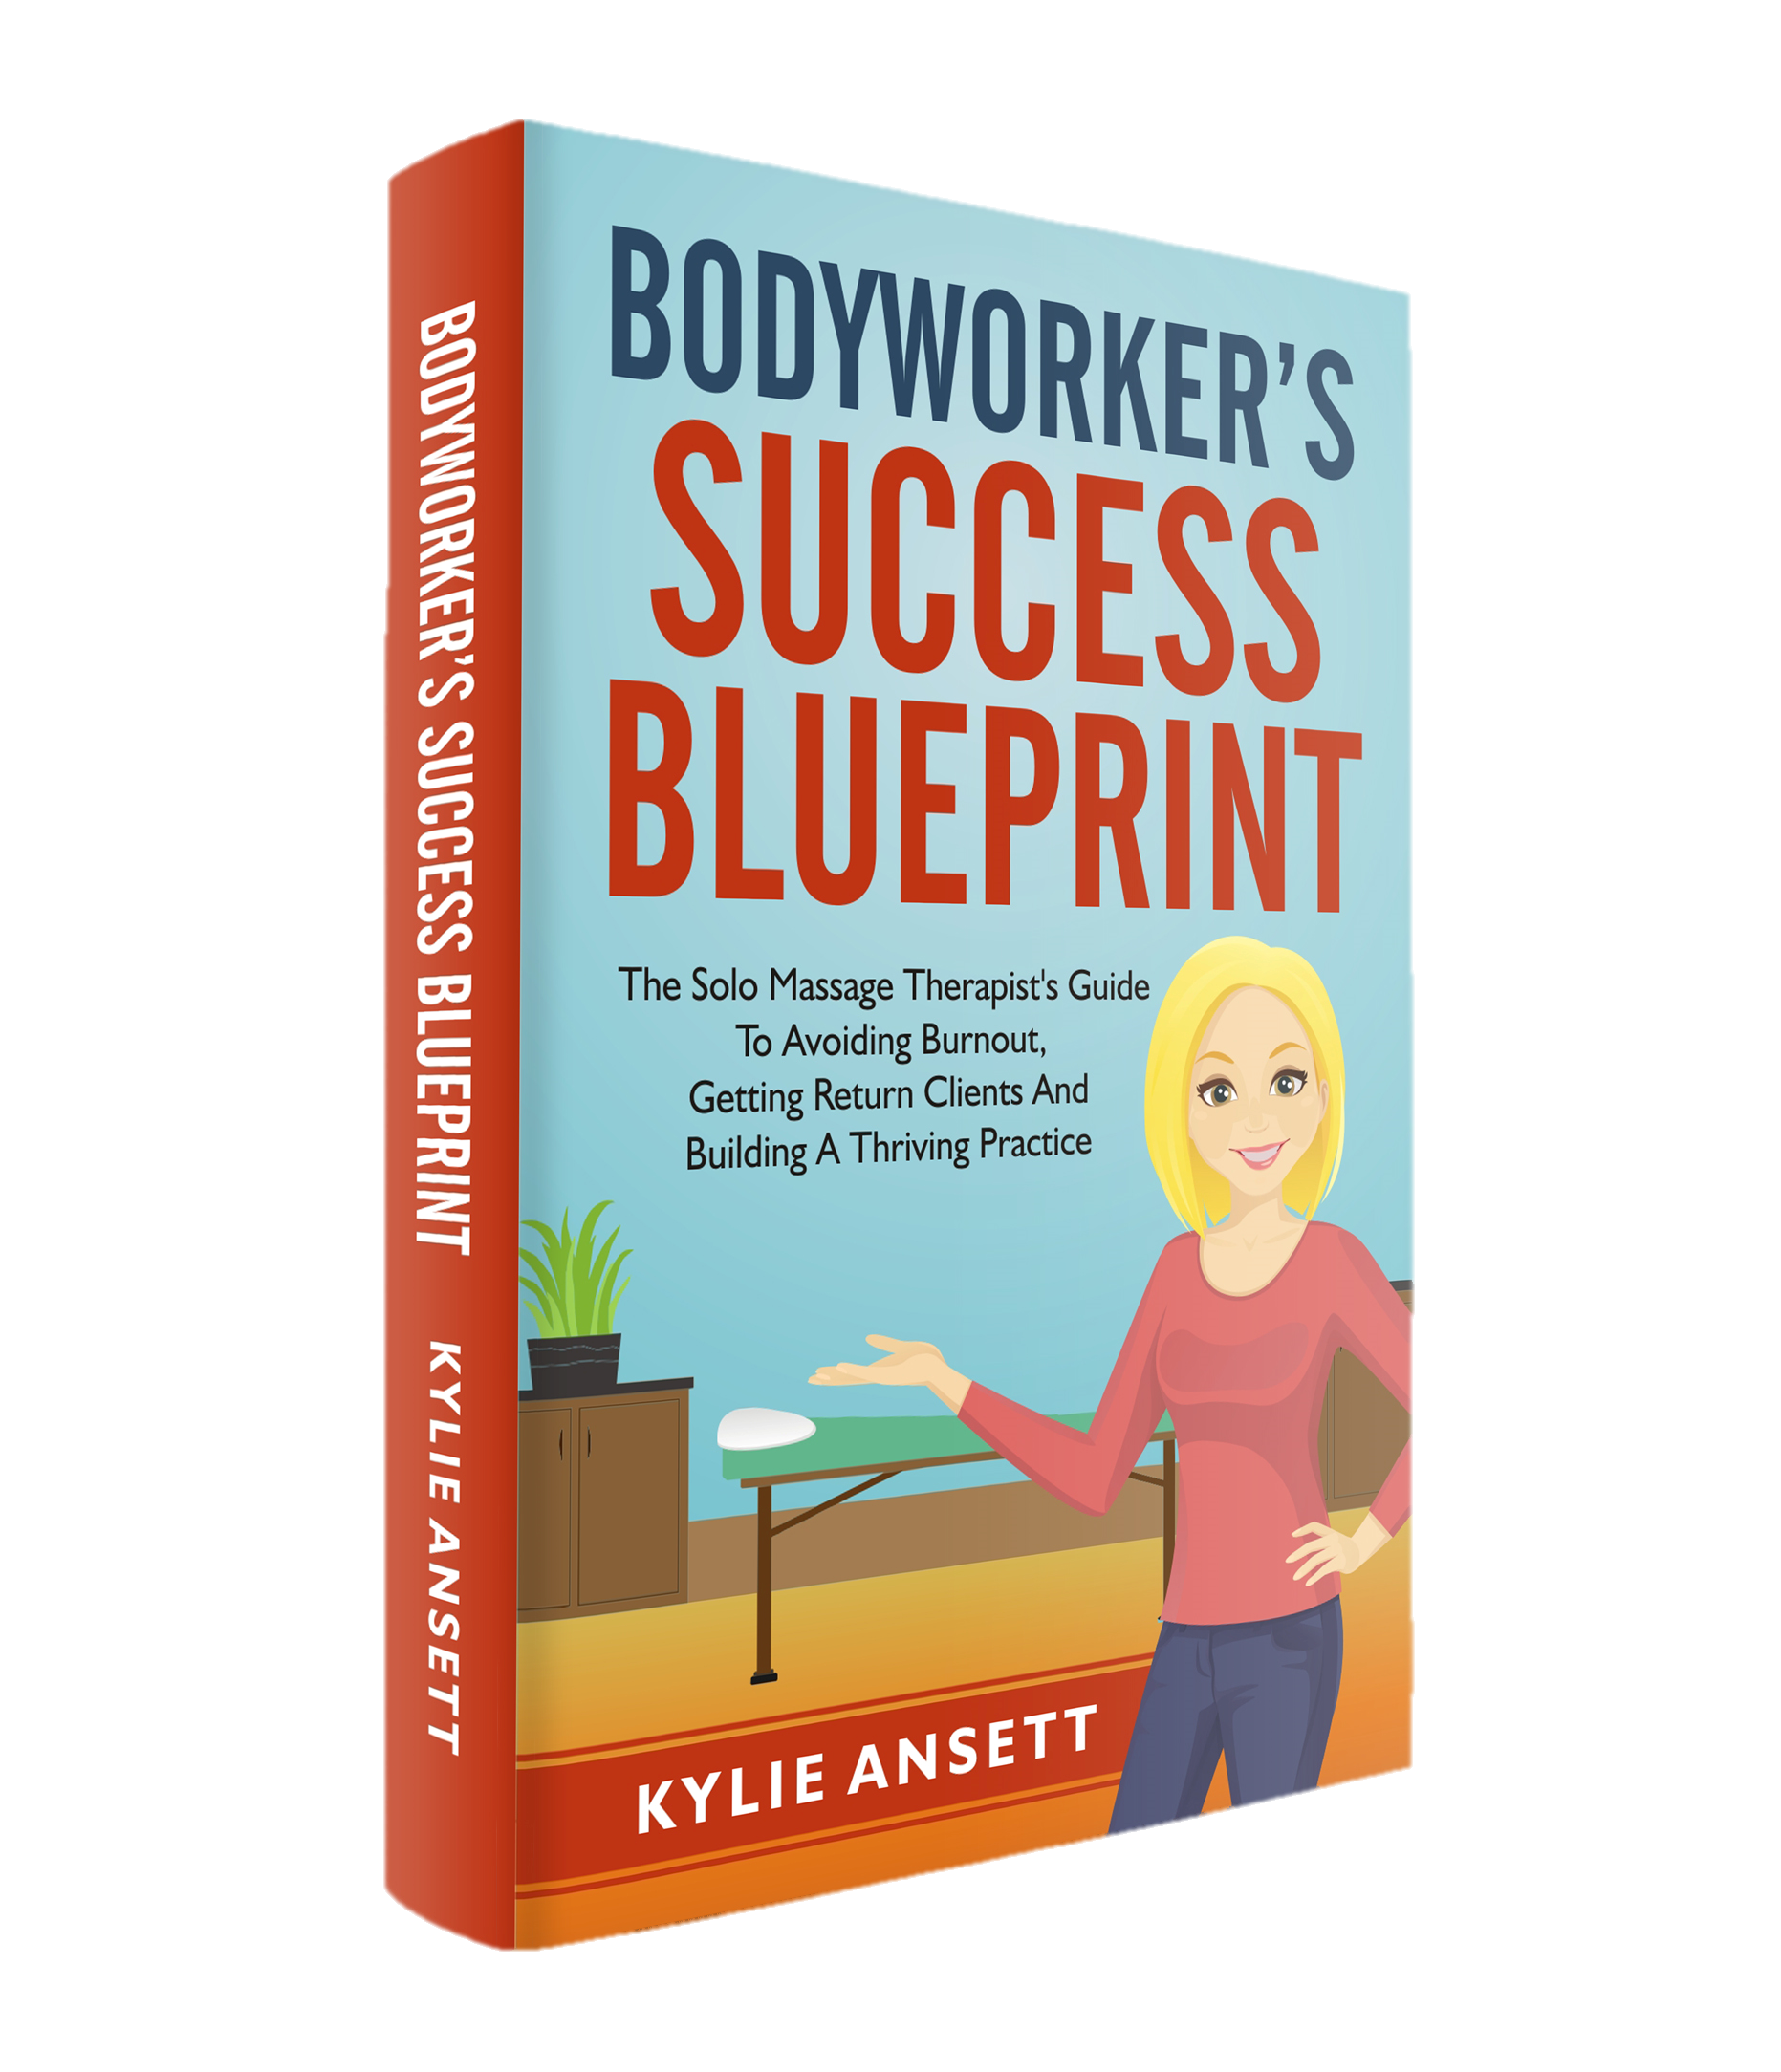 Bodyworkers success blueprint by kylie ansett book cover malvernweather Gallery